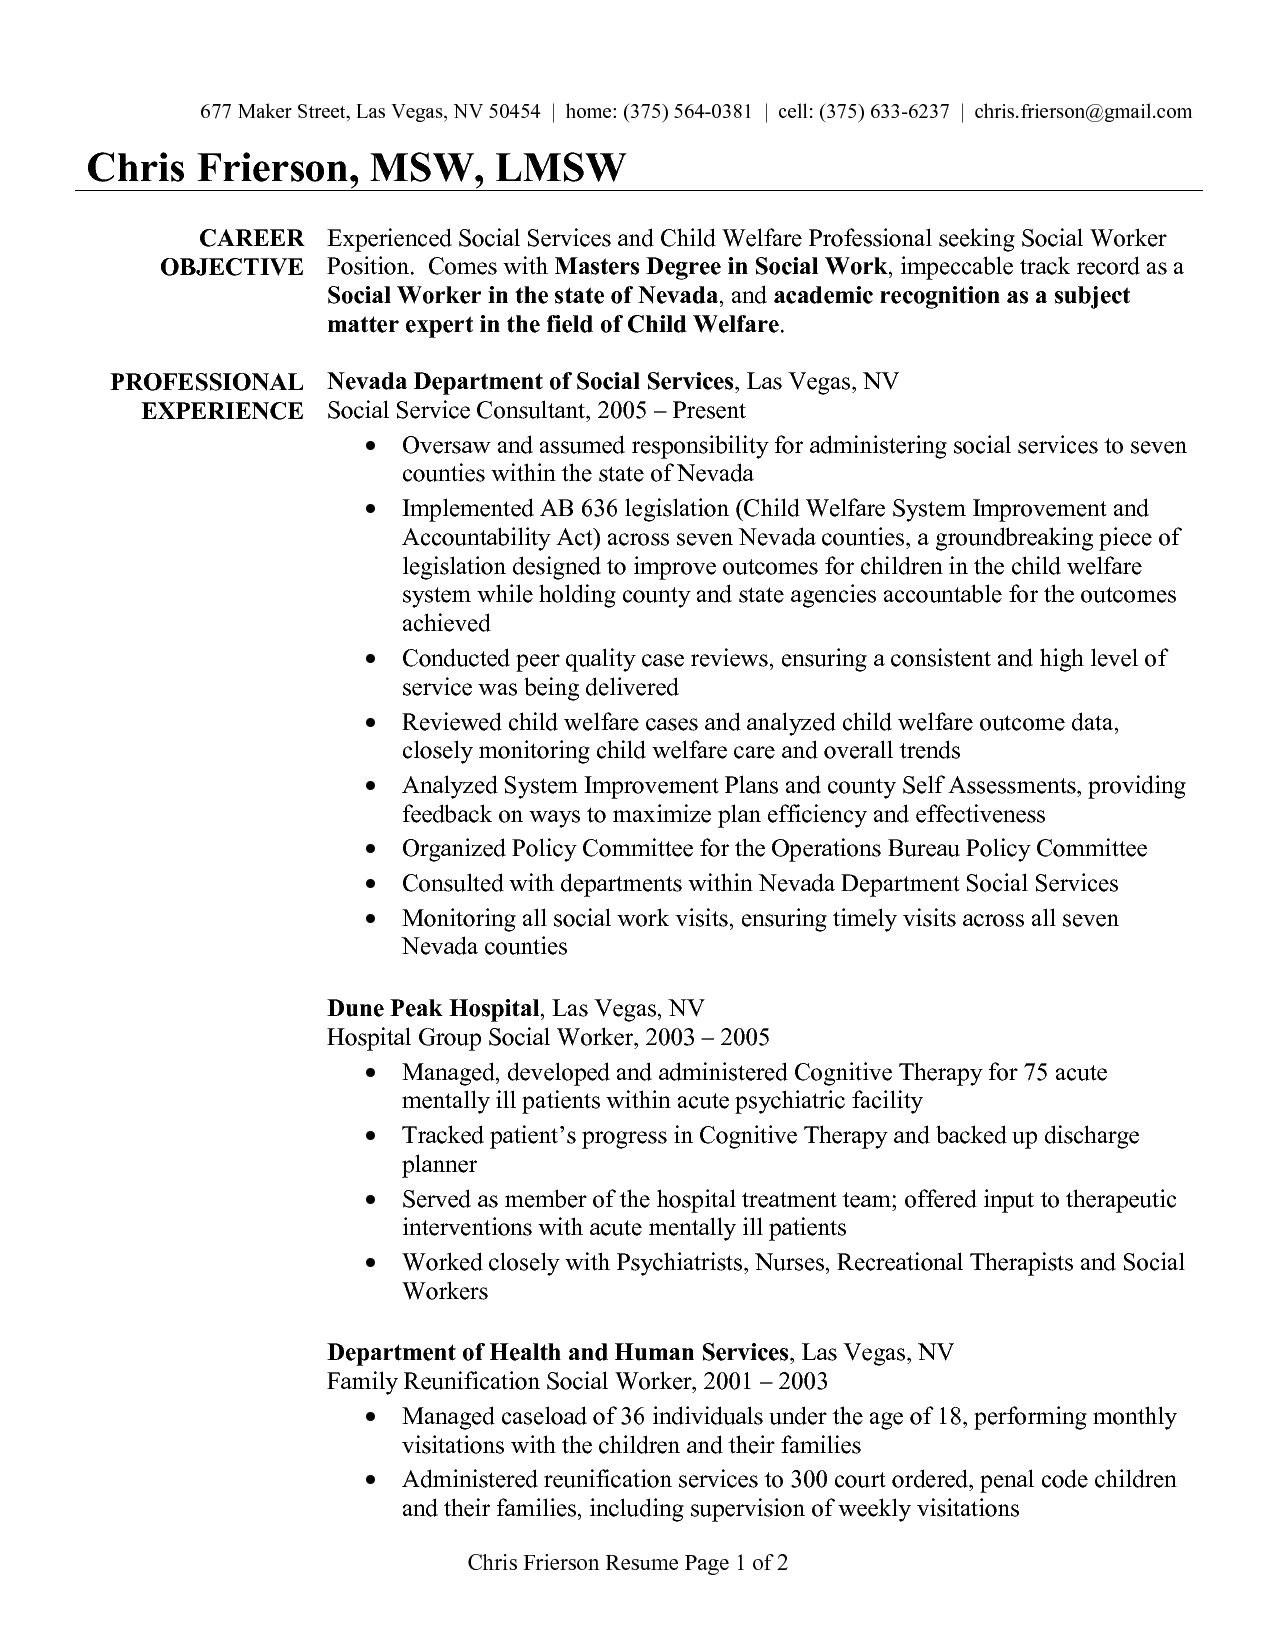 Free Resume Templates Online Social Work Resume Examples  Social Worker Resume Sample